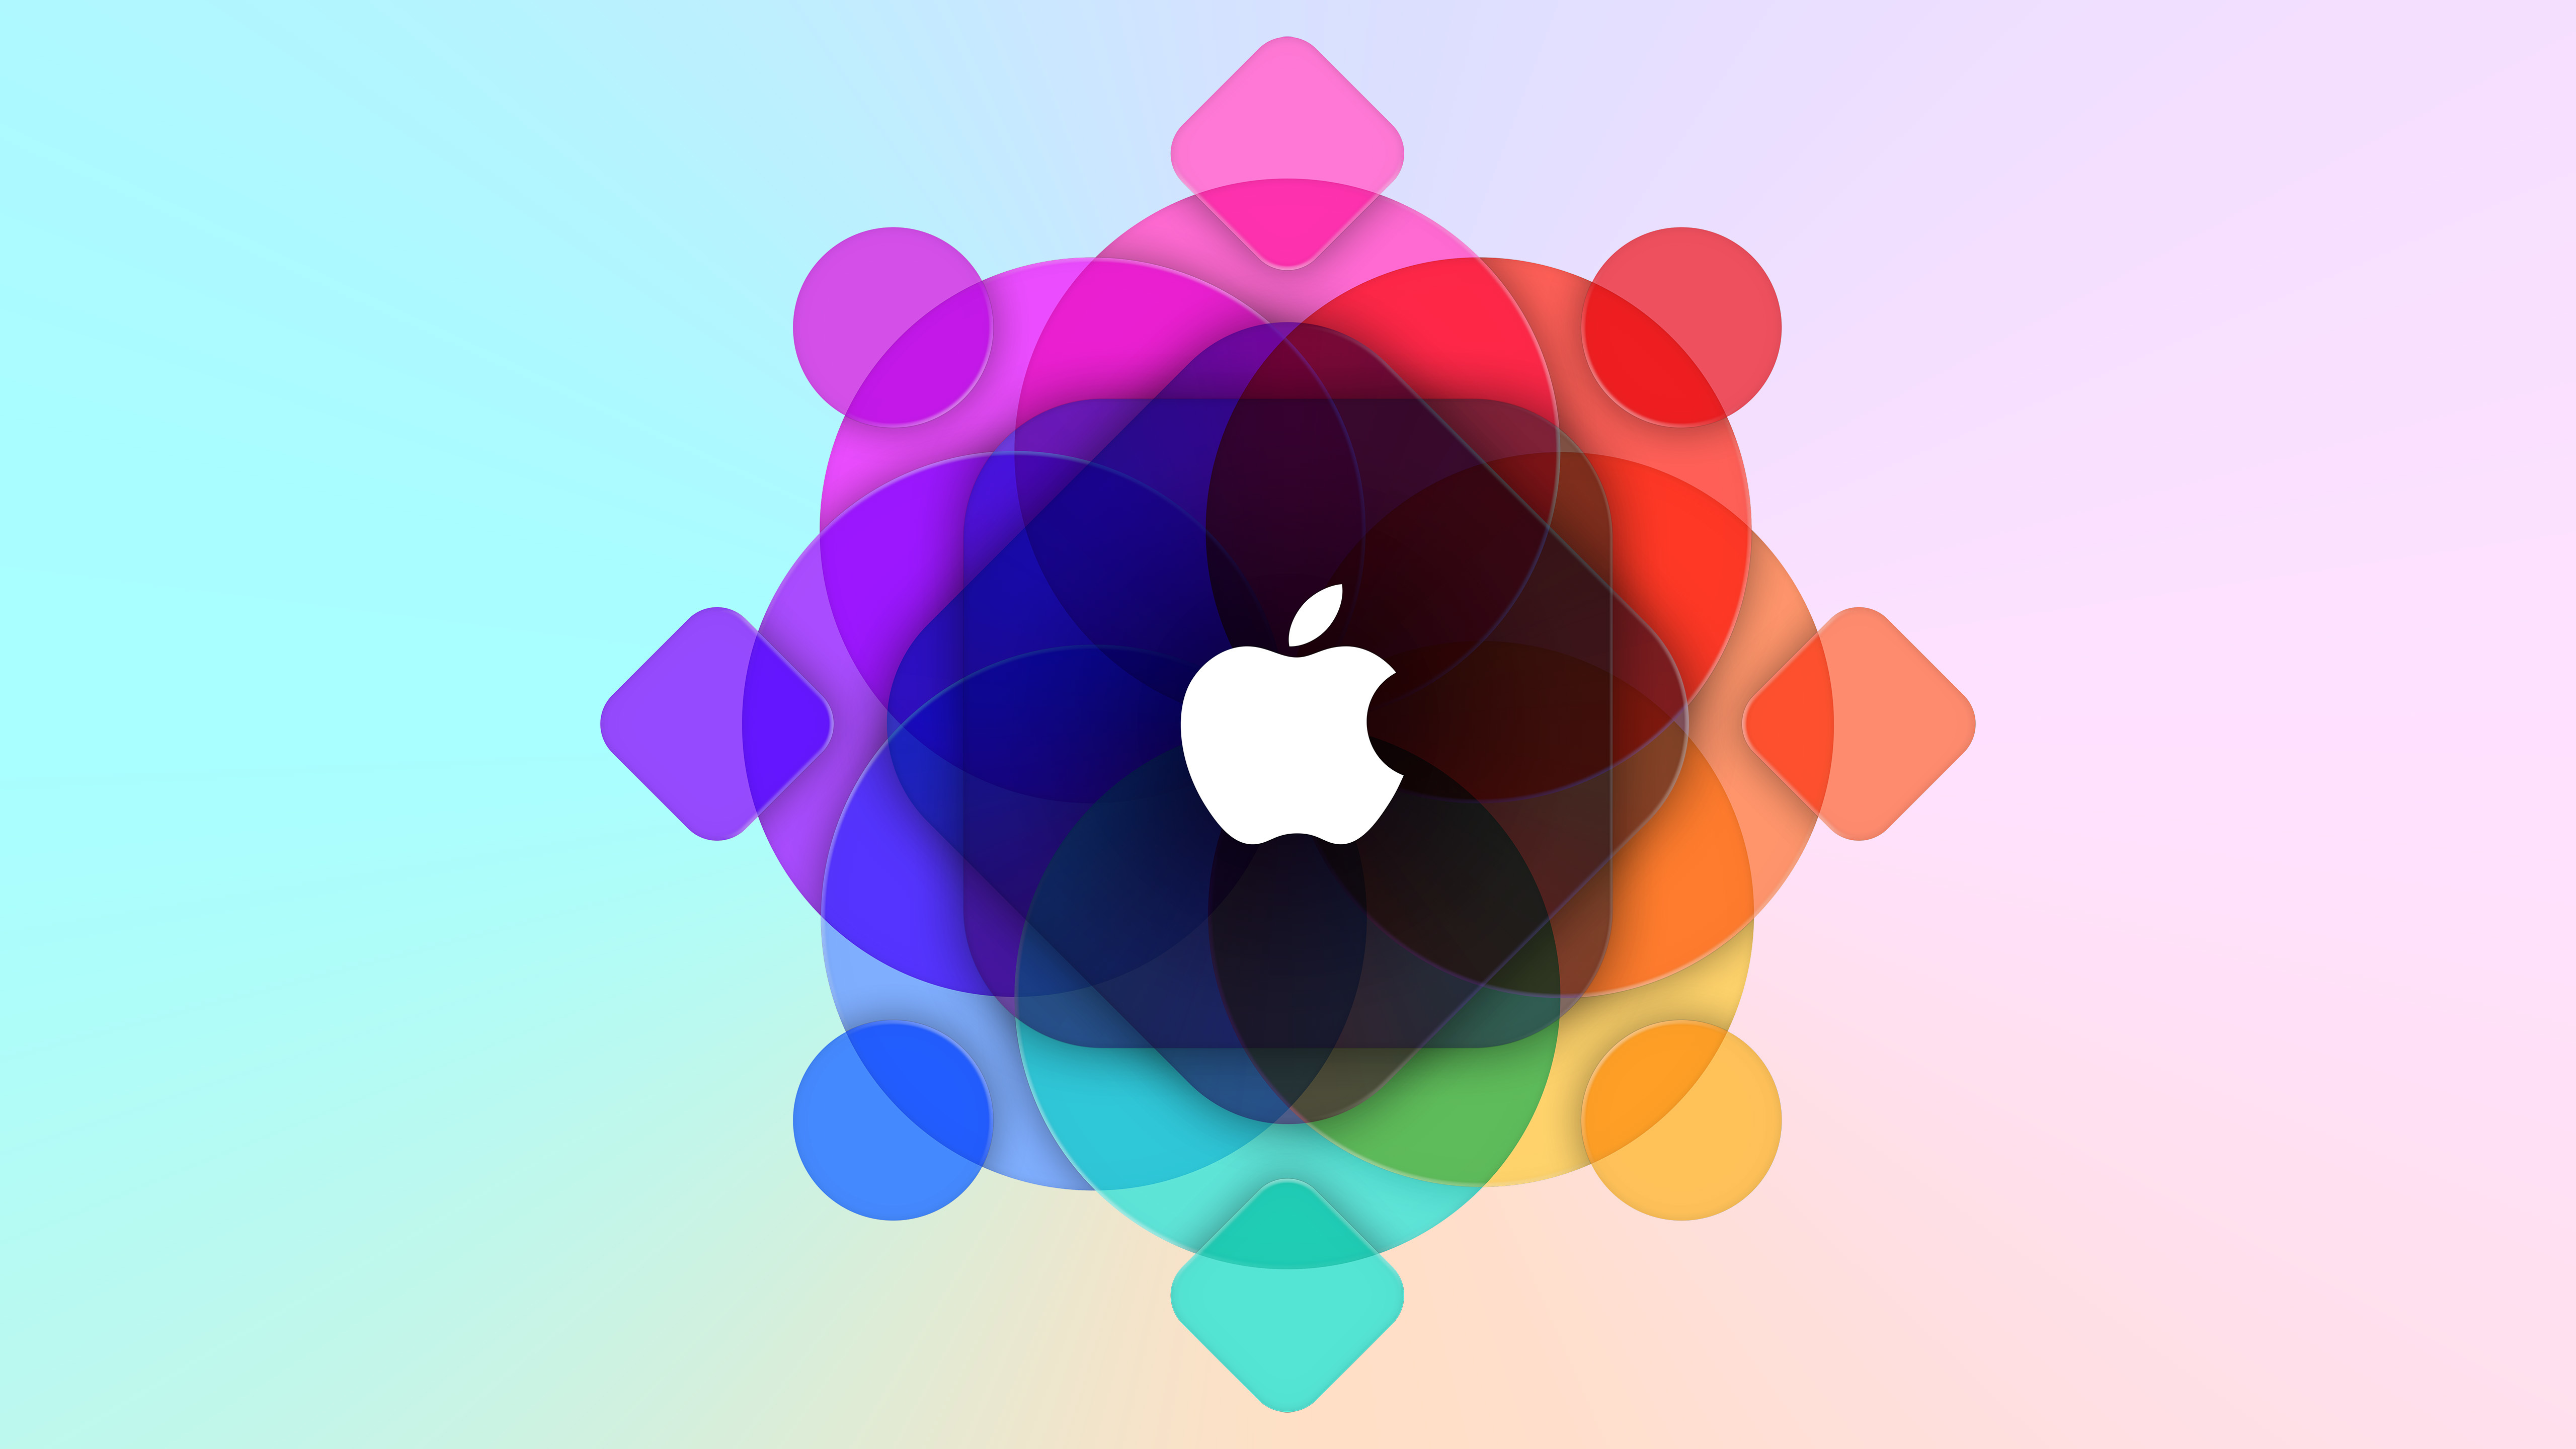 Apple Logo 4k Wallpaper Wwdc Colorful Gradient Background 5k Technology 1565